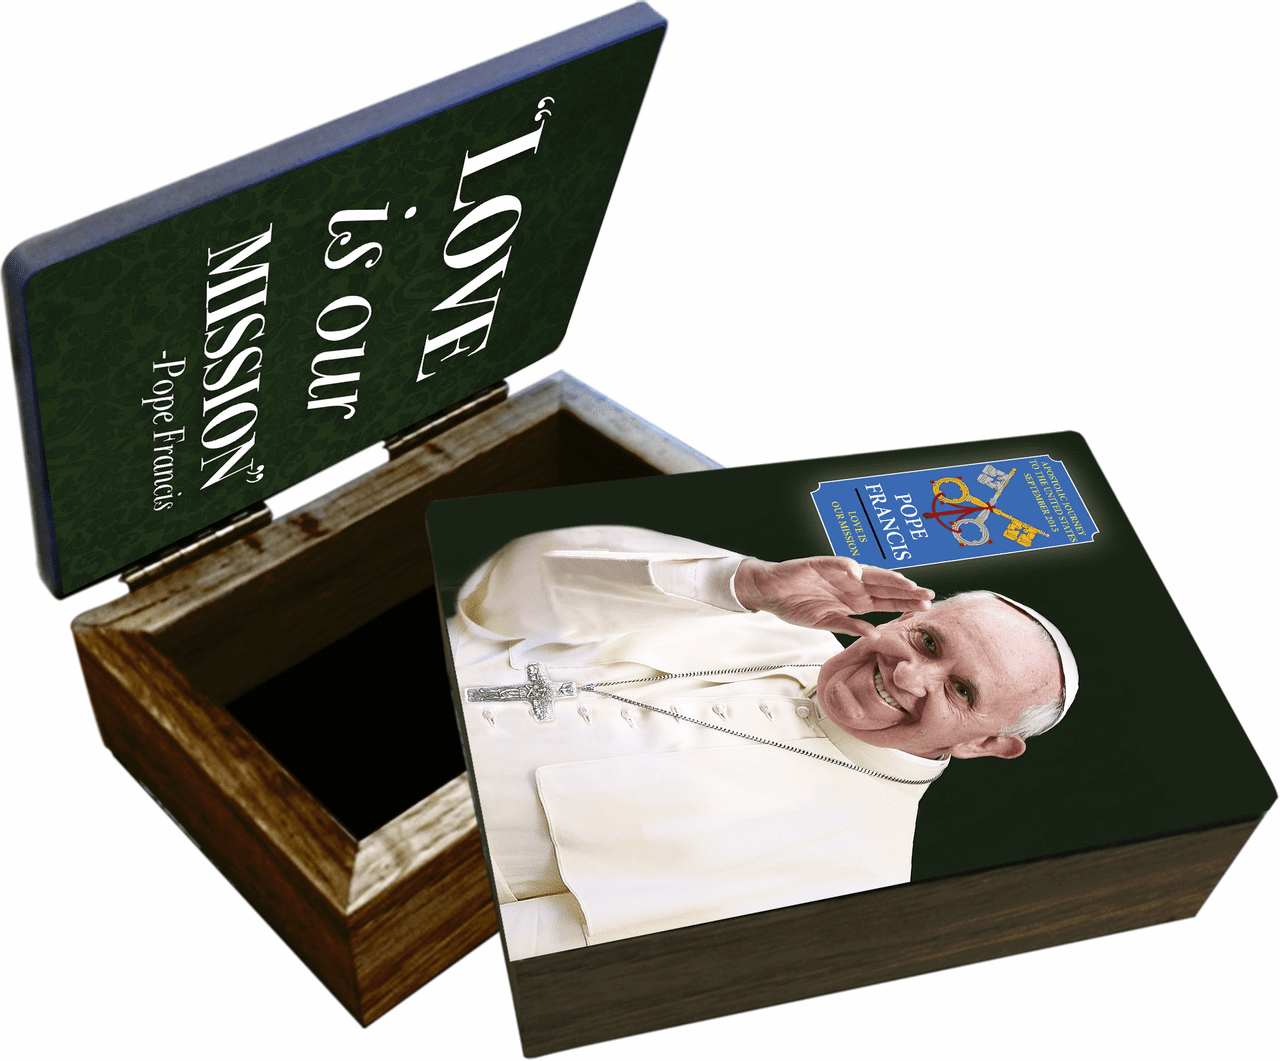 Nelson's Pope Francis Waving Commemorative Apostolic Journey Wooden Rosary and Keepsake Box